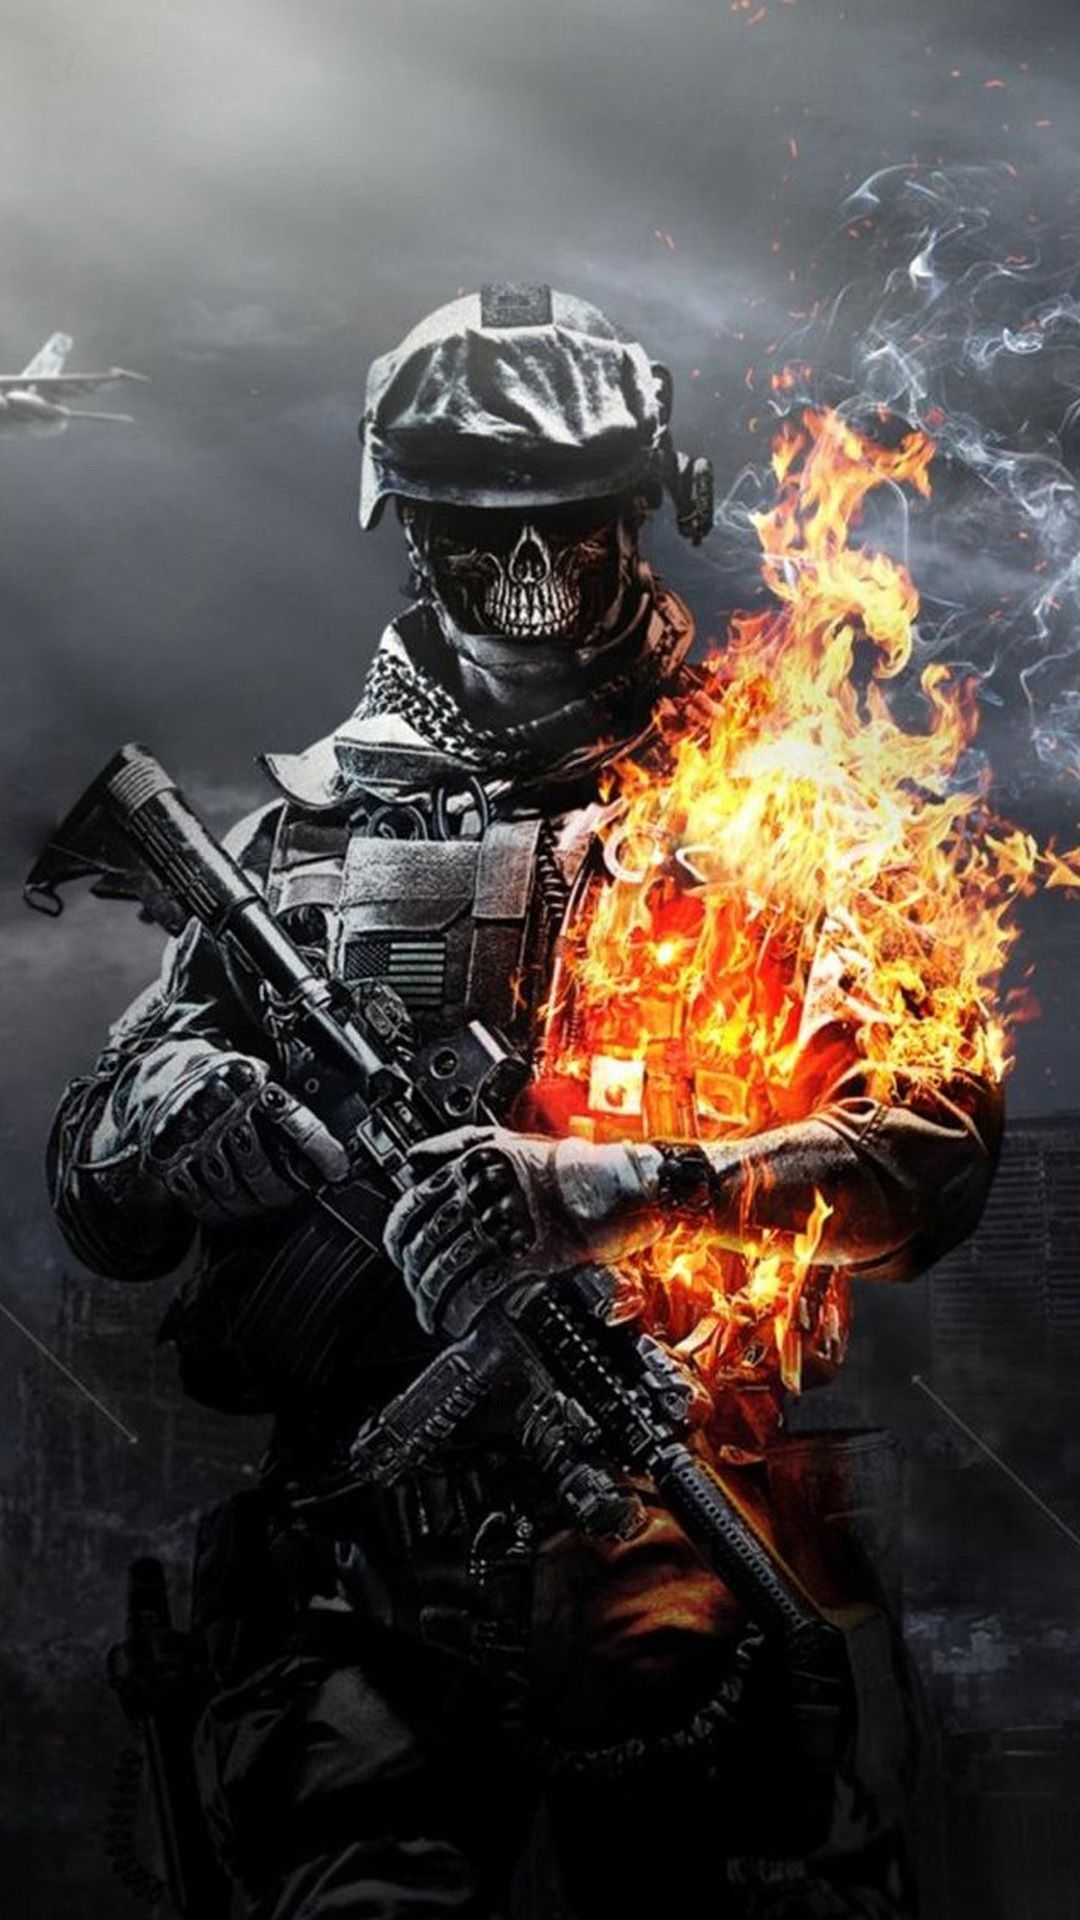 Call Of Duty Modern Warfare Call Of Duty Modern Warfare Pc Download Size Ilustrasi Bisnis Pasukan Khusus Penembak Jitu